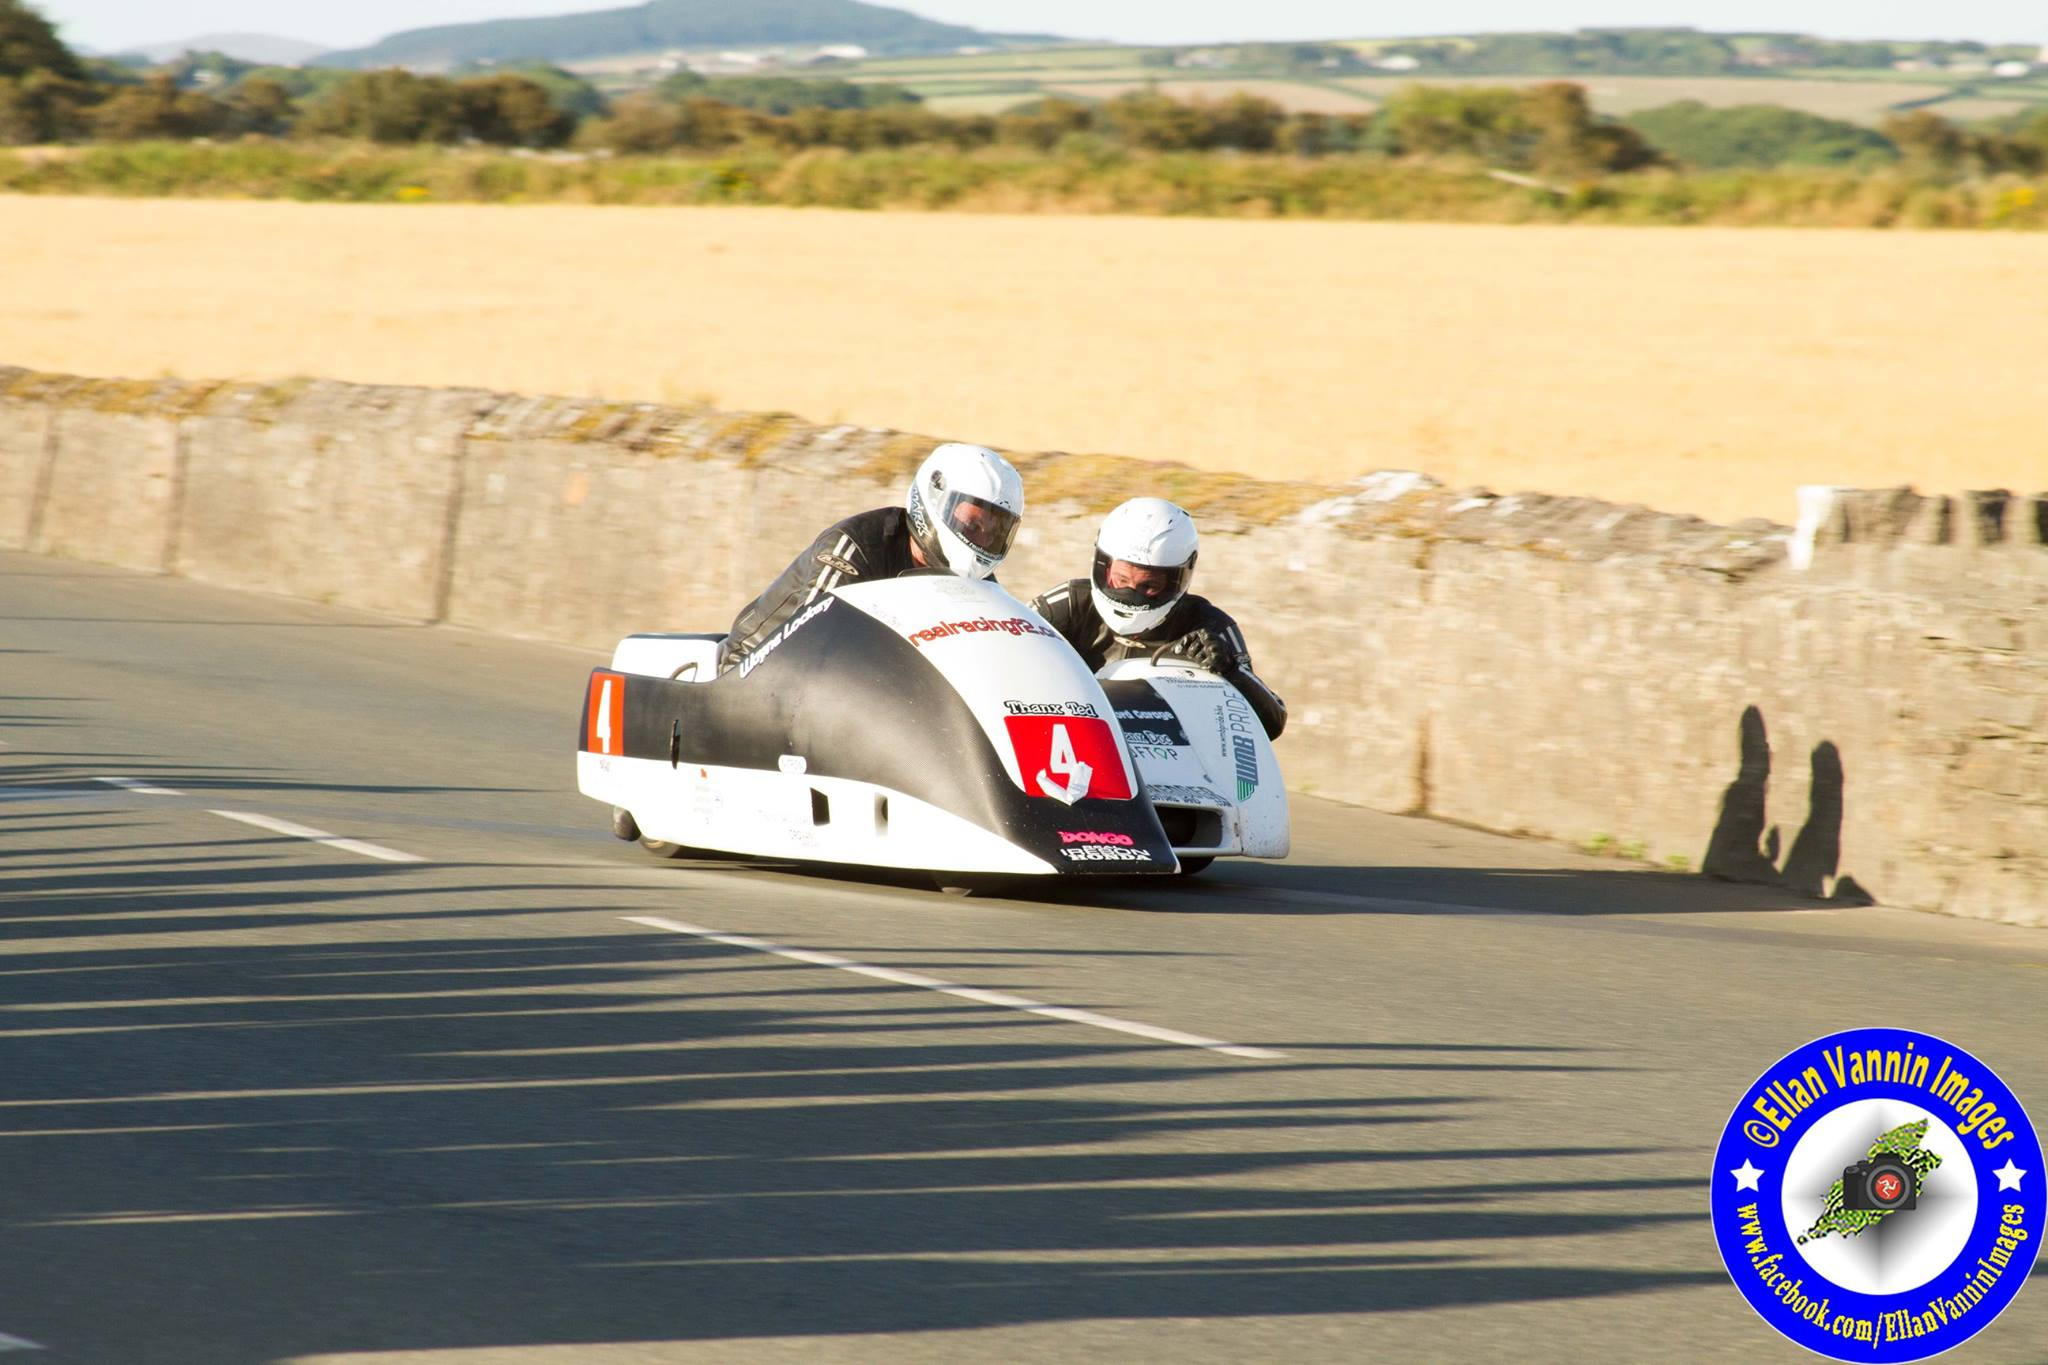 Sidecar Ten Questions Challenge – Mark Sayers